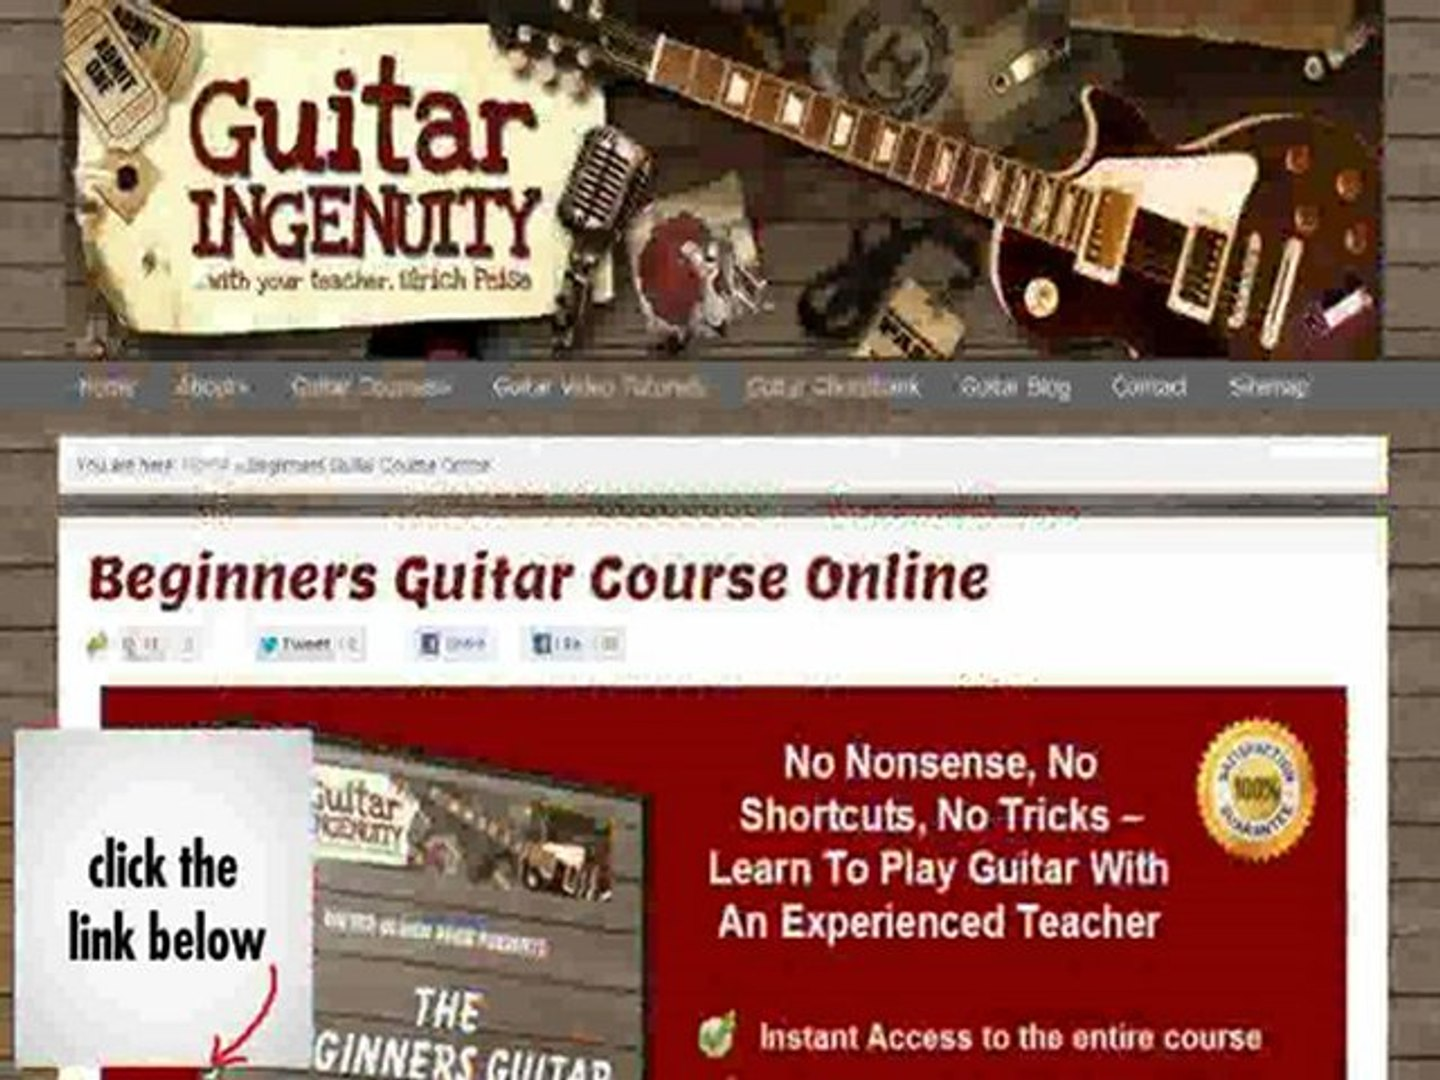 Learn How to Play Guitar - Course Online